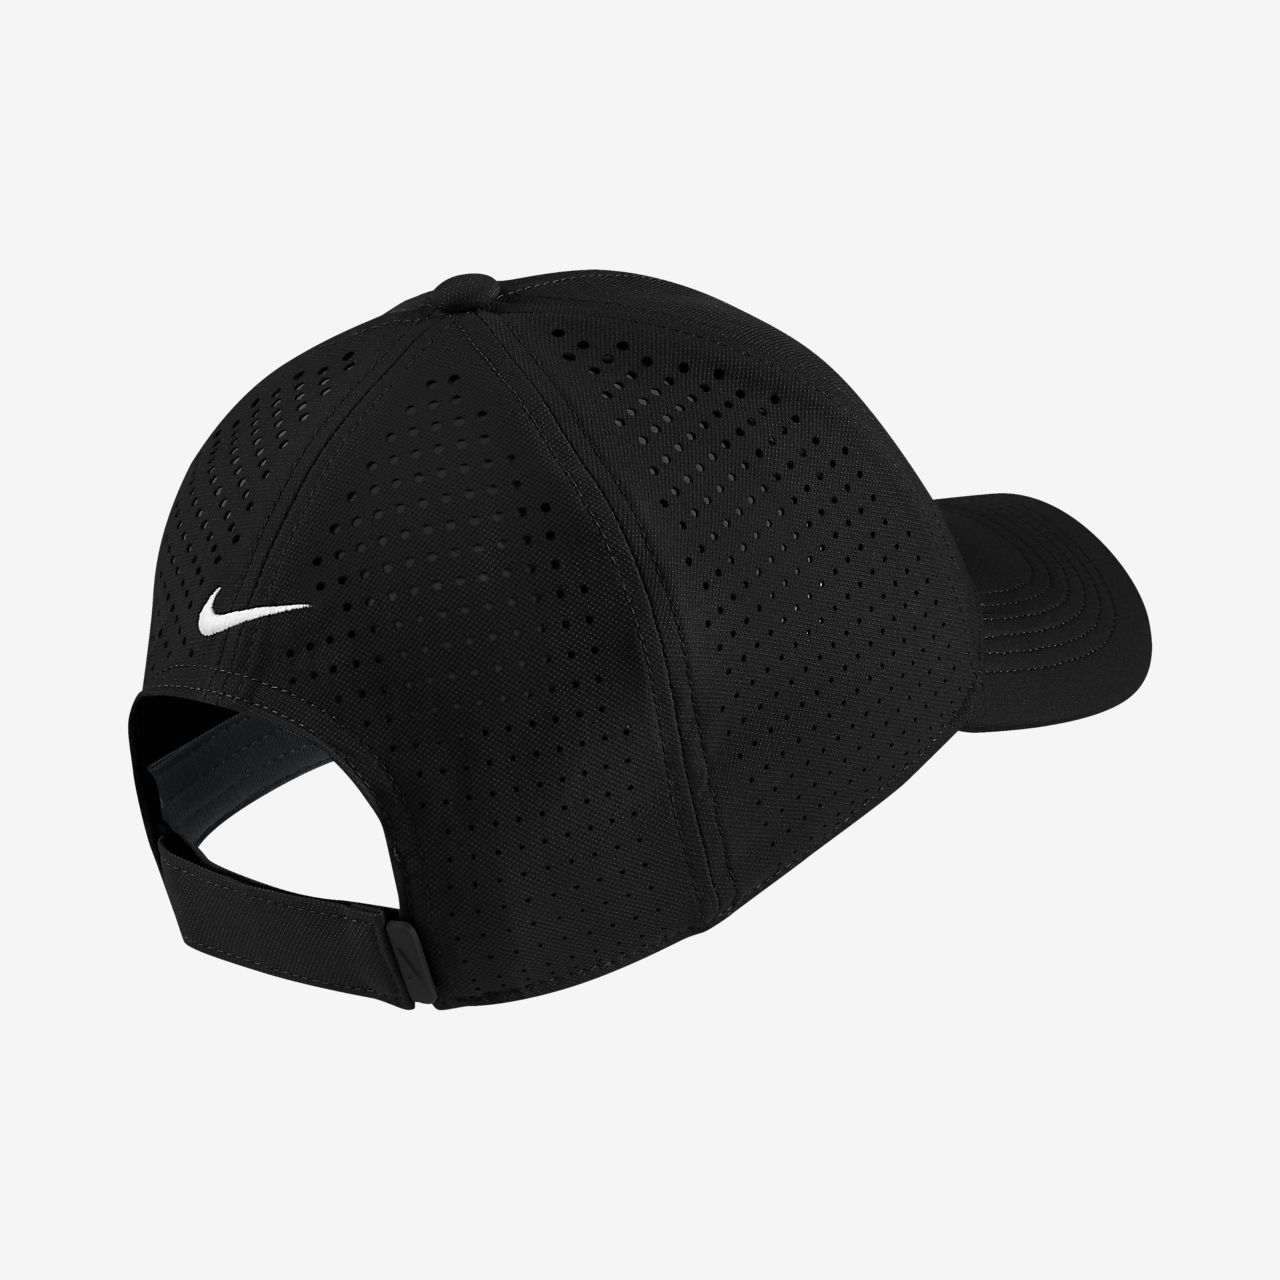 casquette de golf r glable nike legacy 91 perforated ch. Black Bedroom Furniture Sets. Home Design Ideas